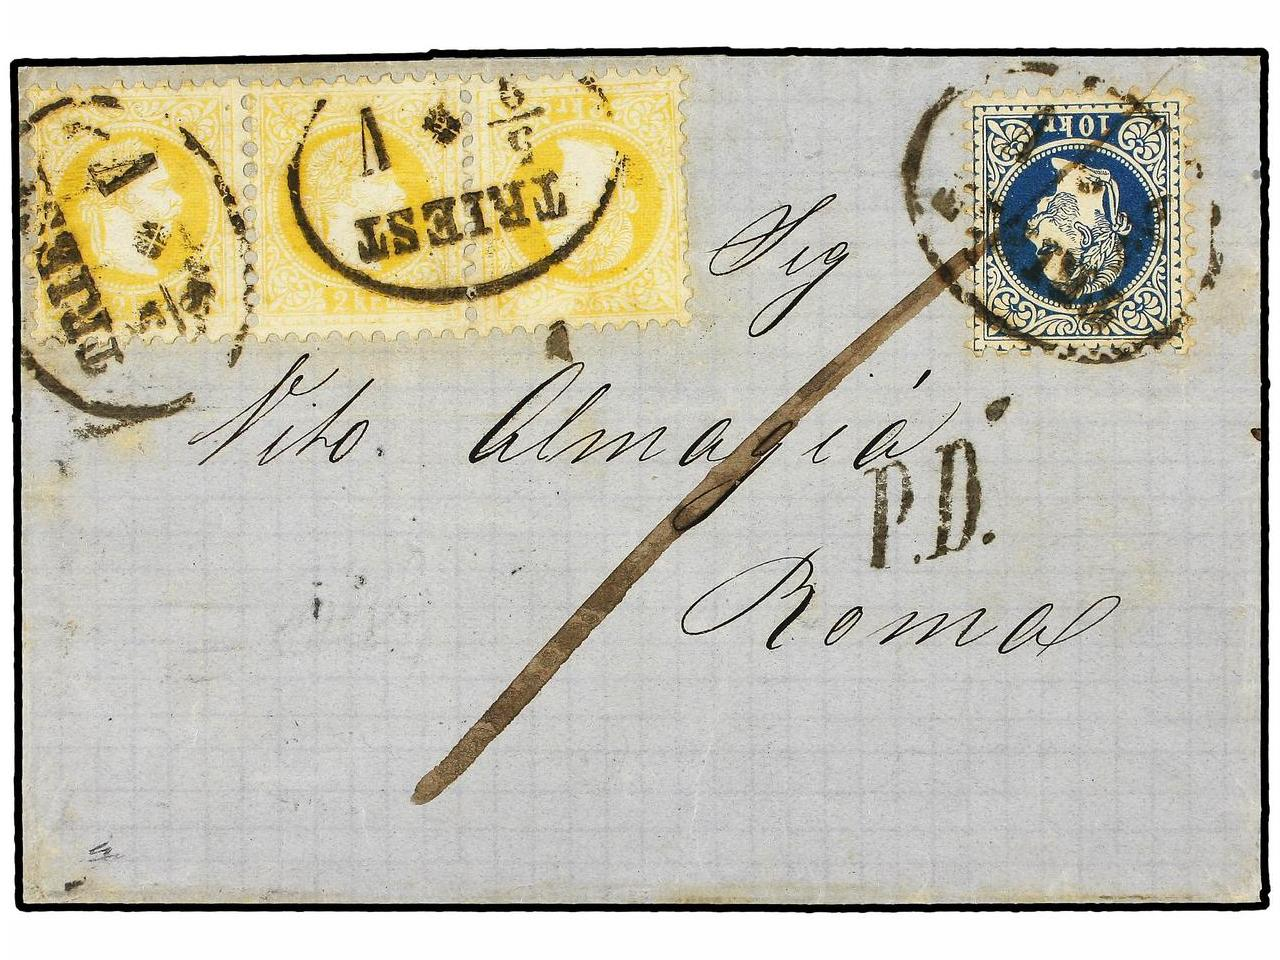 ✉ AUSTRIA. Sc. 27, 30. 1868 (Sept. 5). Cover from TRIEST to